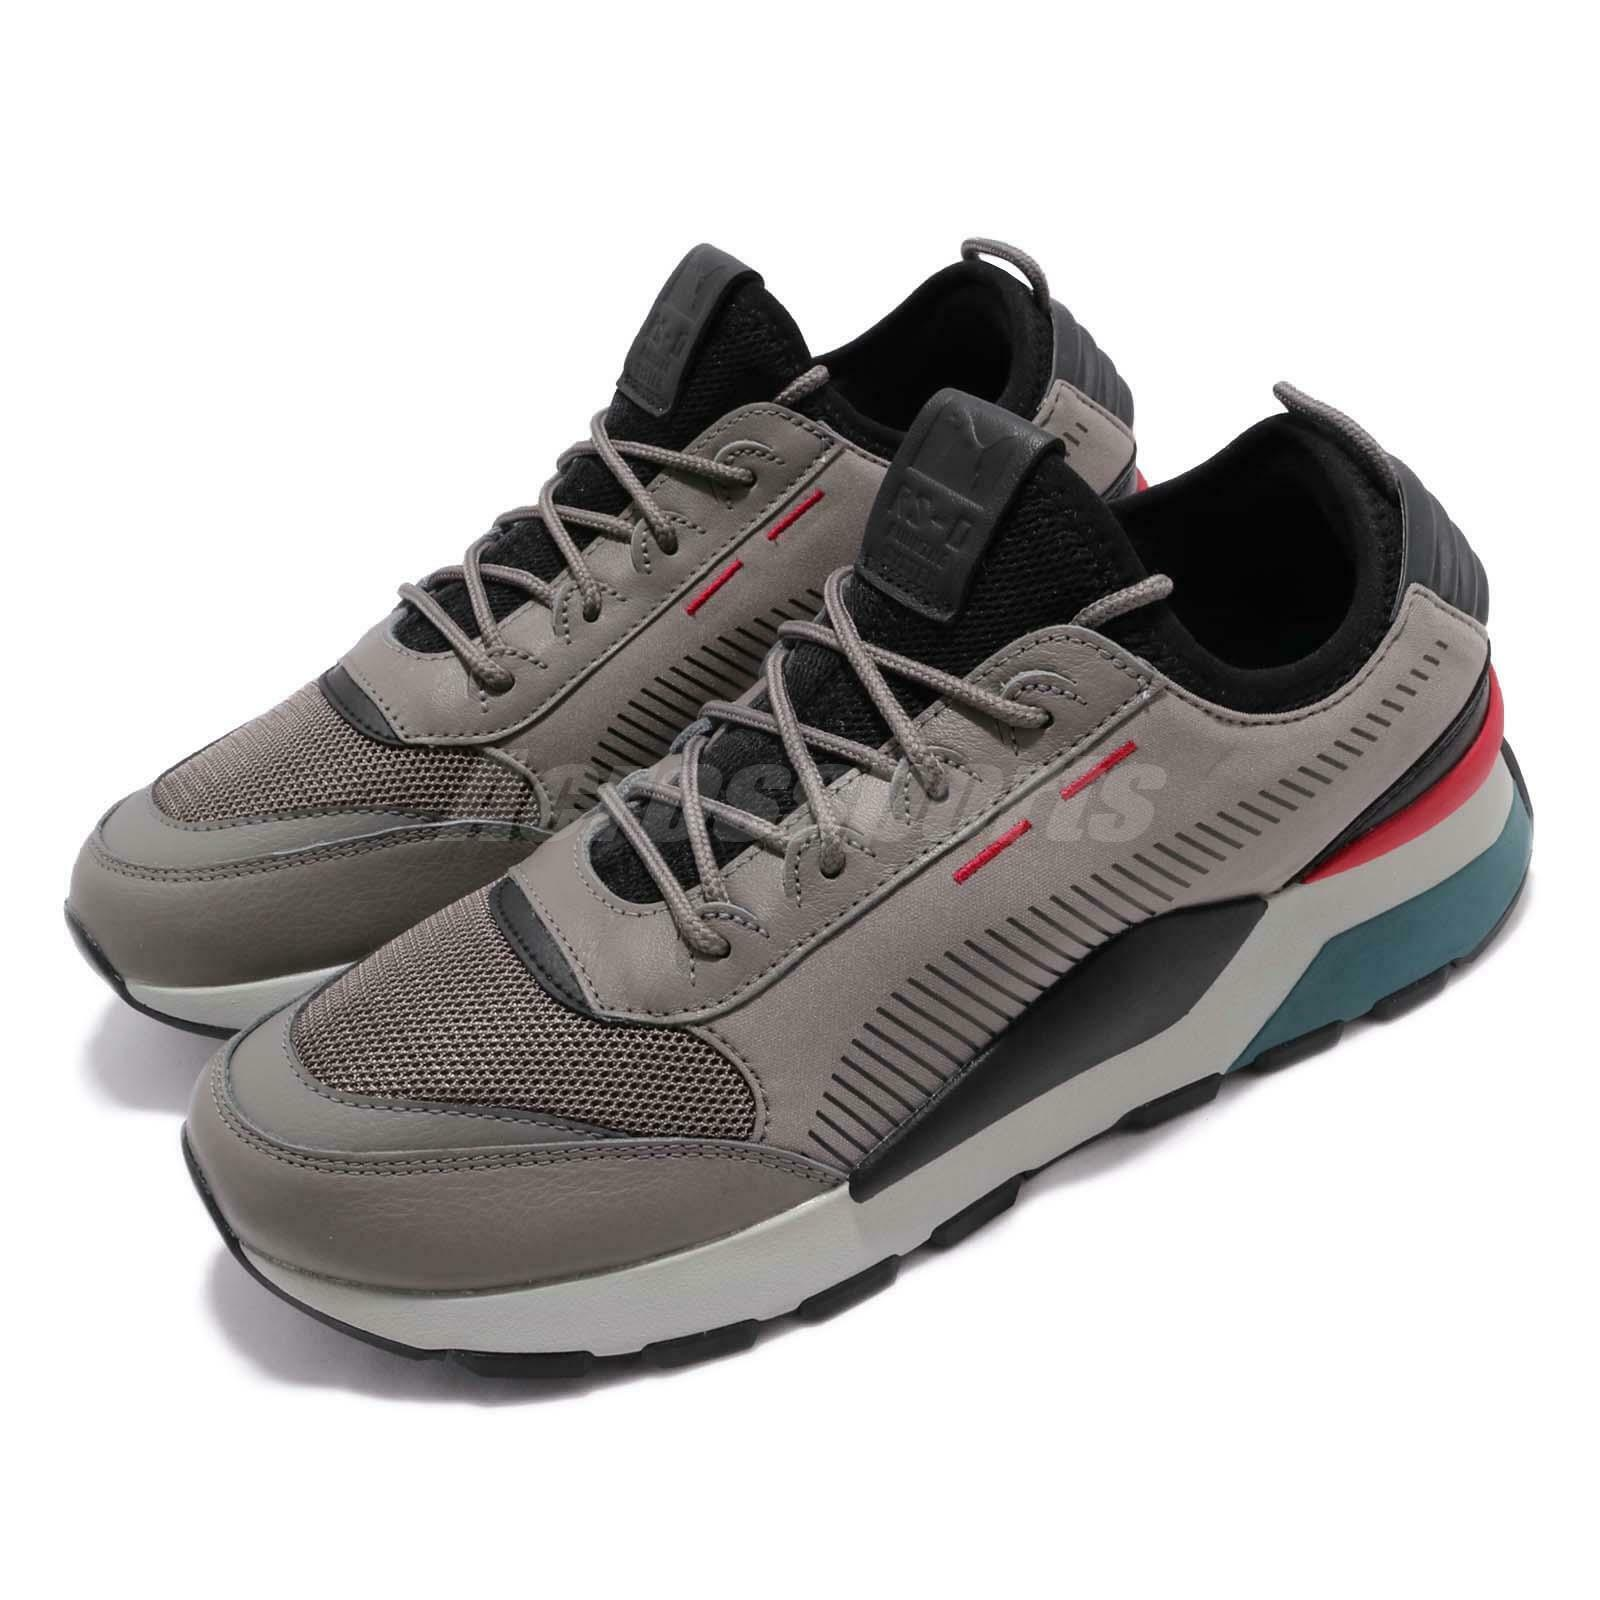 competitive price 6a376 10621 Running Tracks RS-0 Puma System shoes 369362-01 Sneaker Men ...